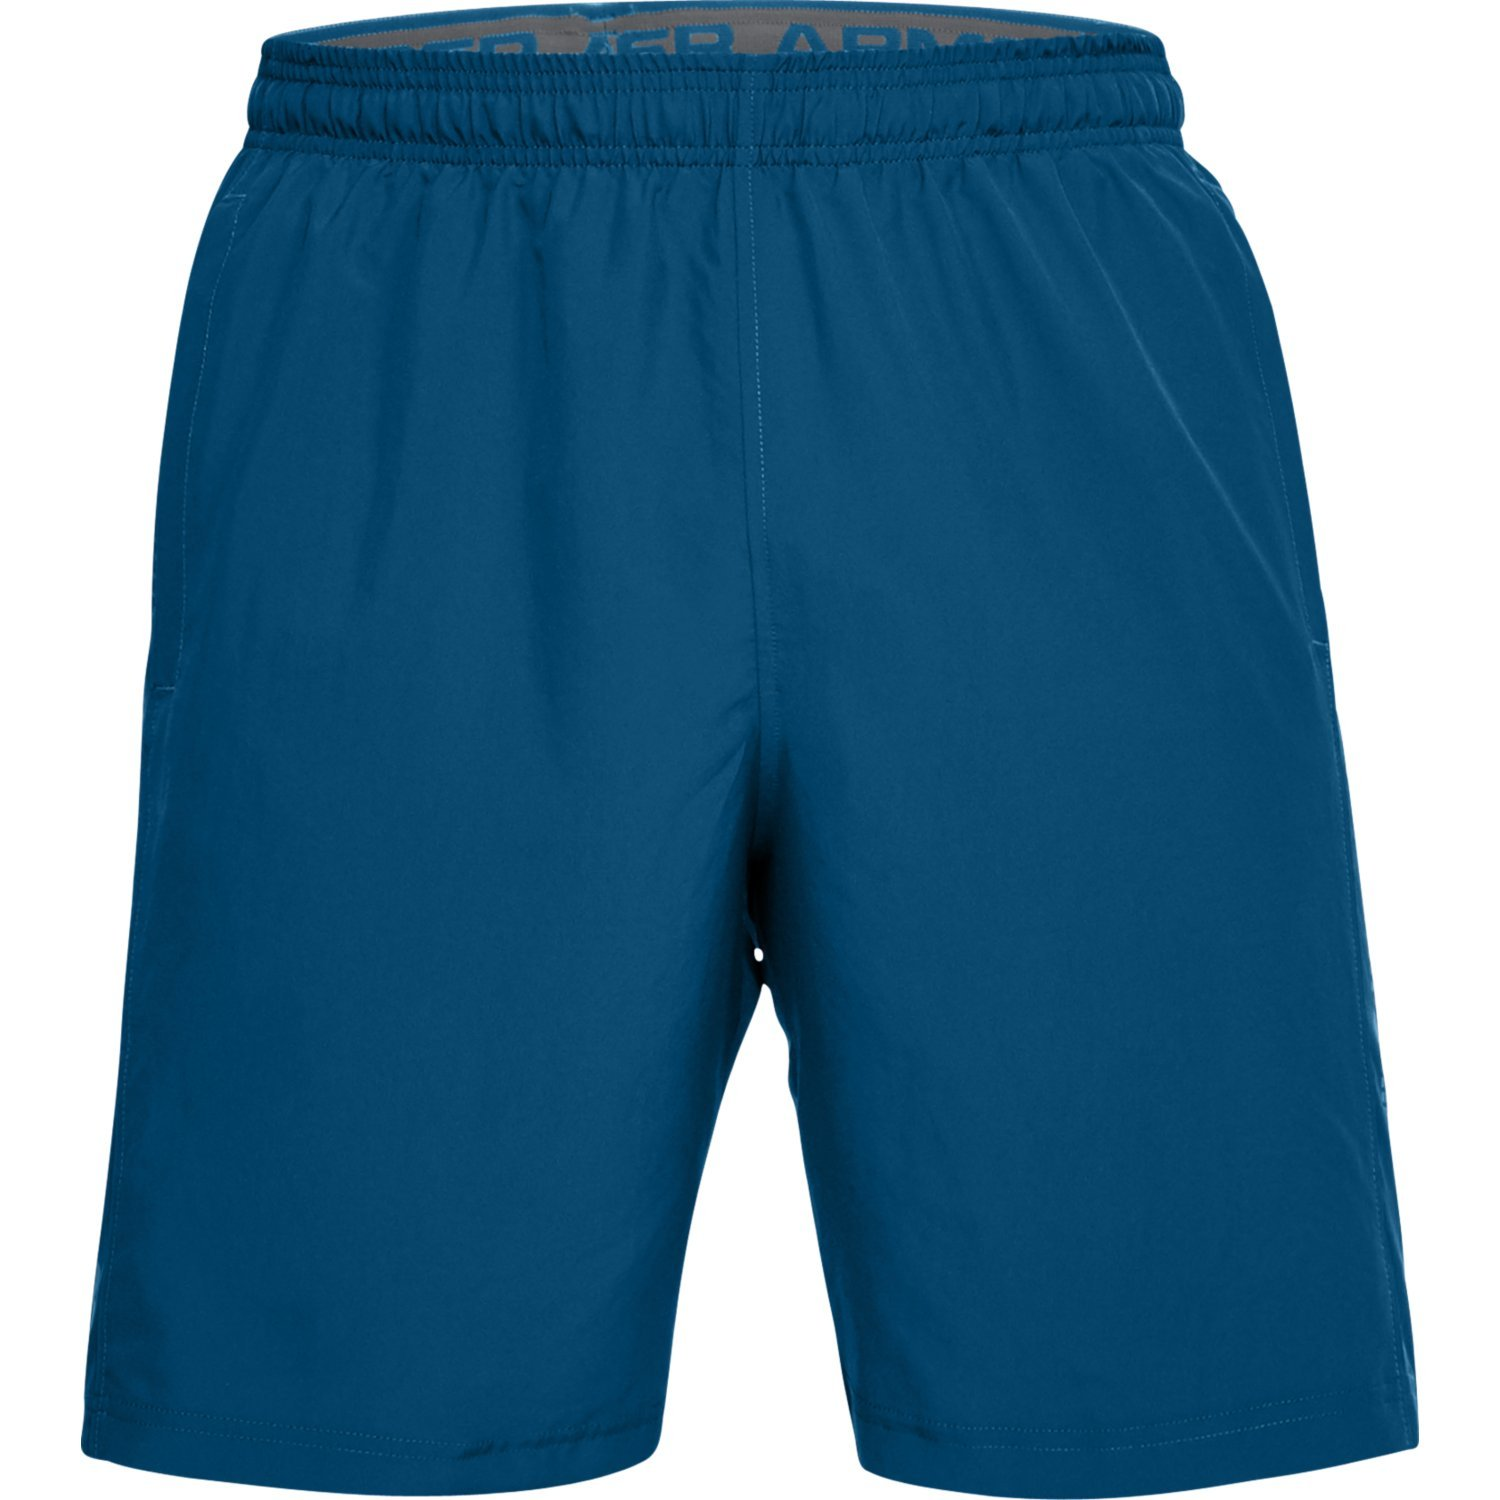 Under Armour Men's Woven Graphic Shorts, Moroccan